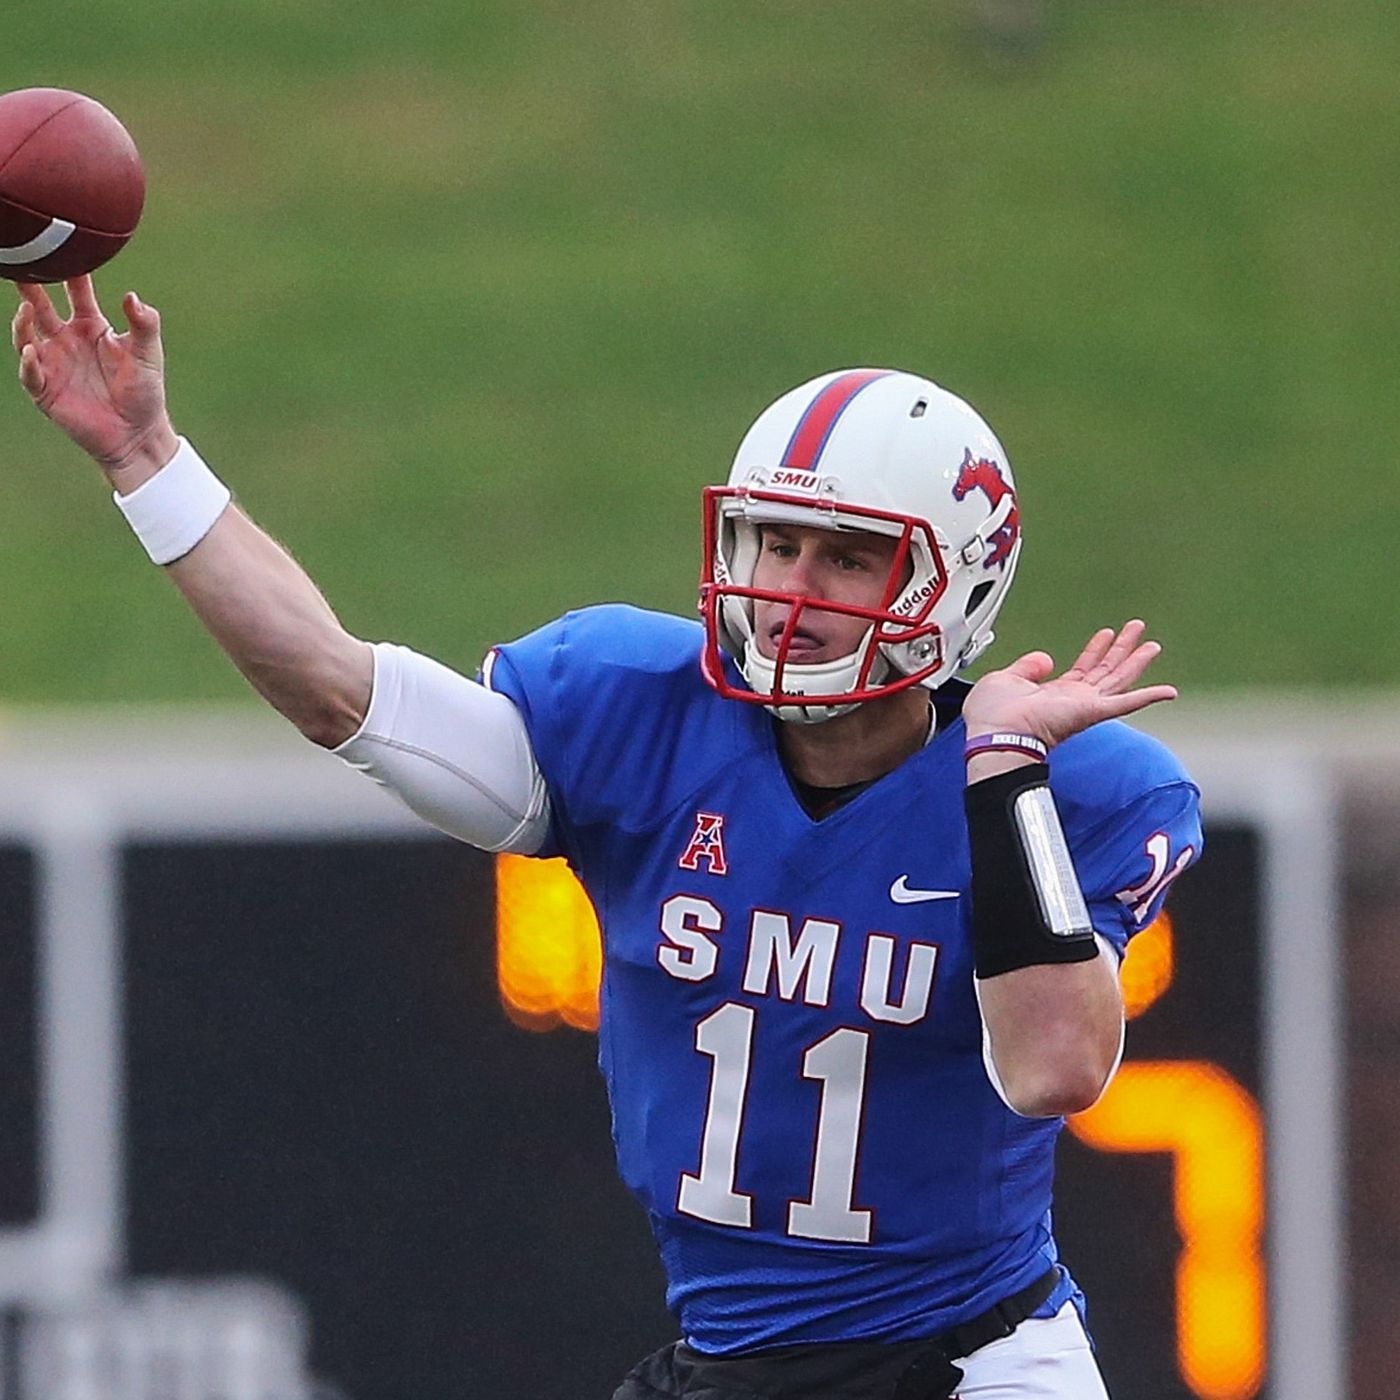 Video Garrett Gilbert Ties Smu Rutgers With Absurd Scramble And Throw Sbnation Com